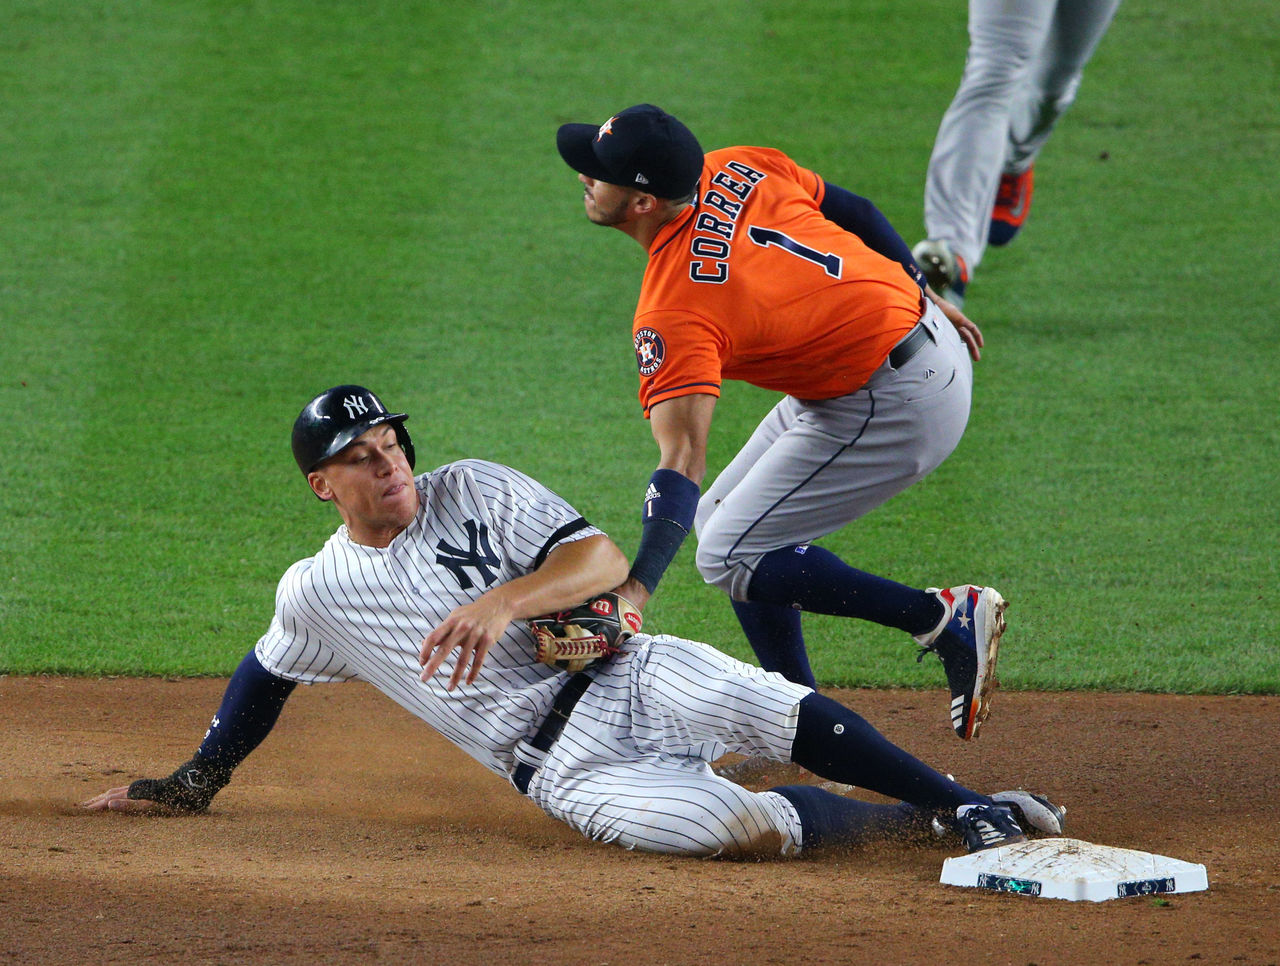 Cropped 2017 10 17t224015z 1817470009 nocid rtrmadp 3 mlb alcs houston astros at new york yankees